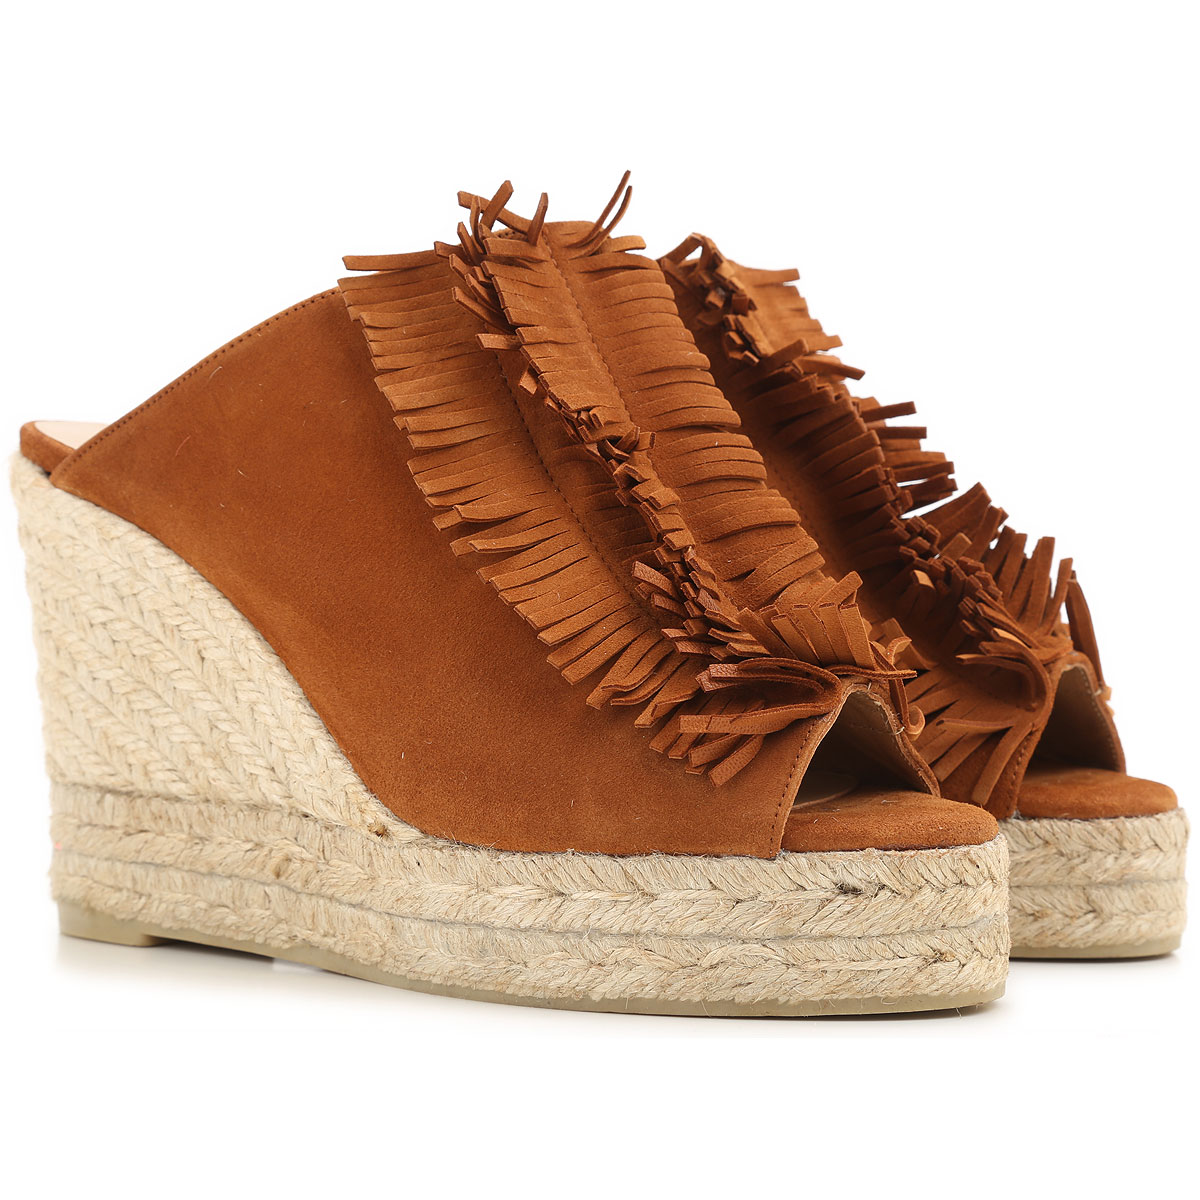 Castaner Wedges for Women in Outlet Rust USA - GOOFASH